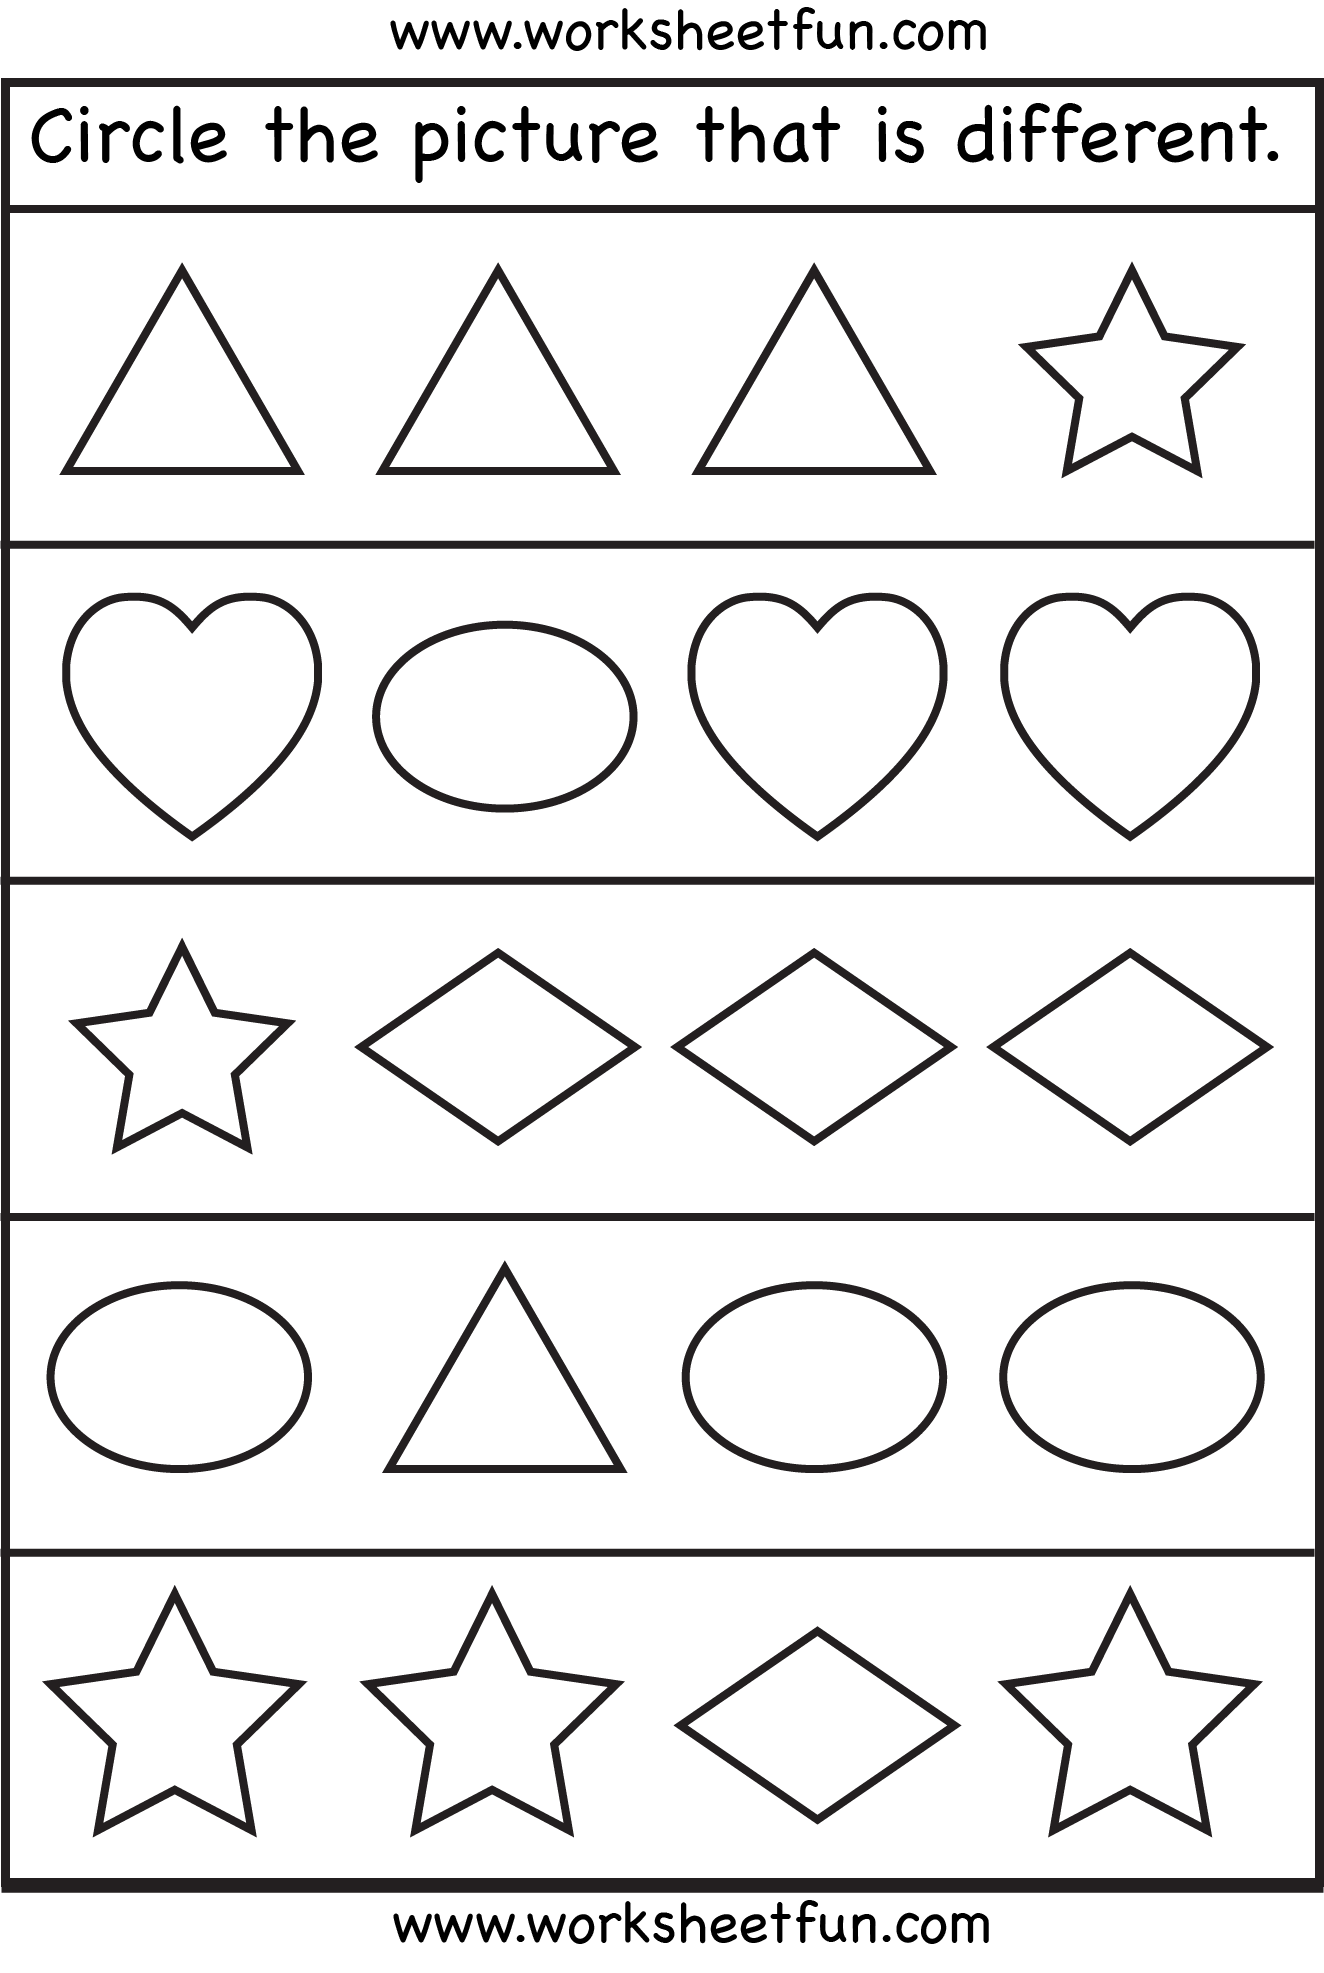 Circle the picture that is different - 3 Worksheets | Preschool ...